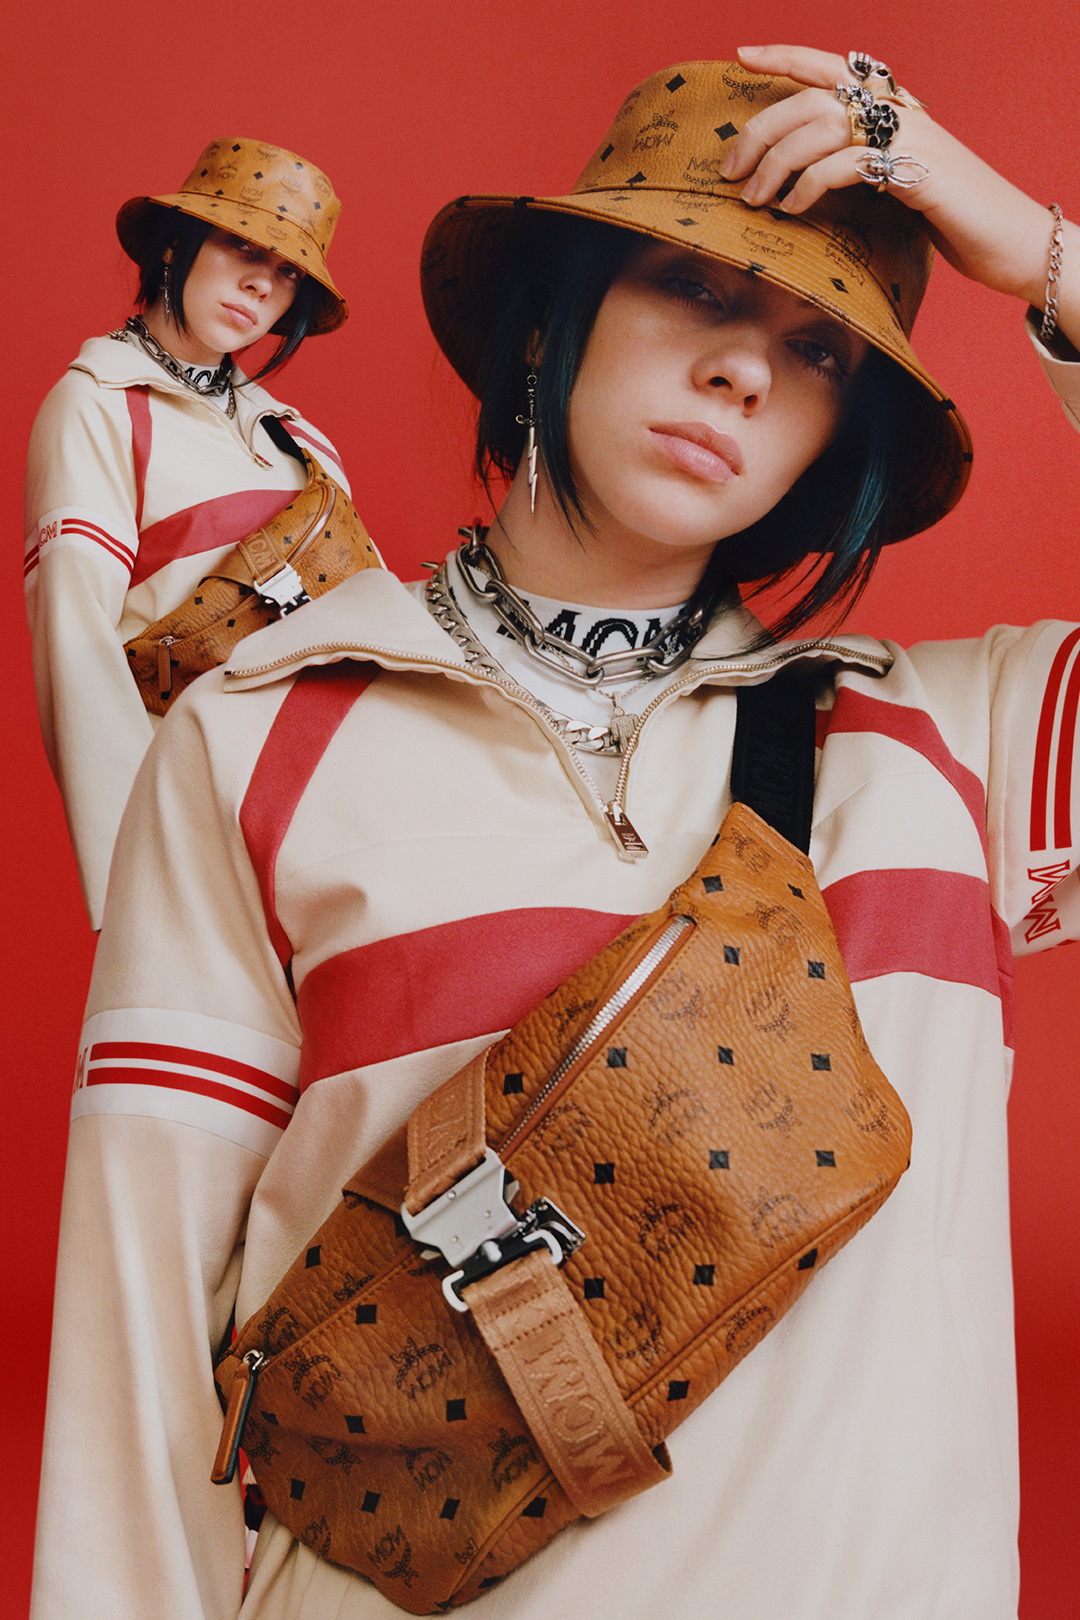 MCM x Billie Eilish collaboration